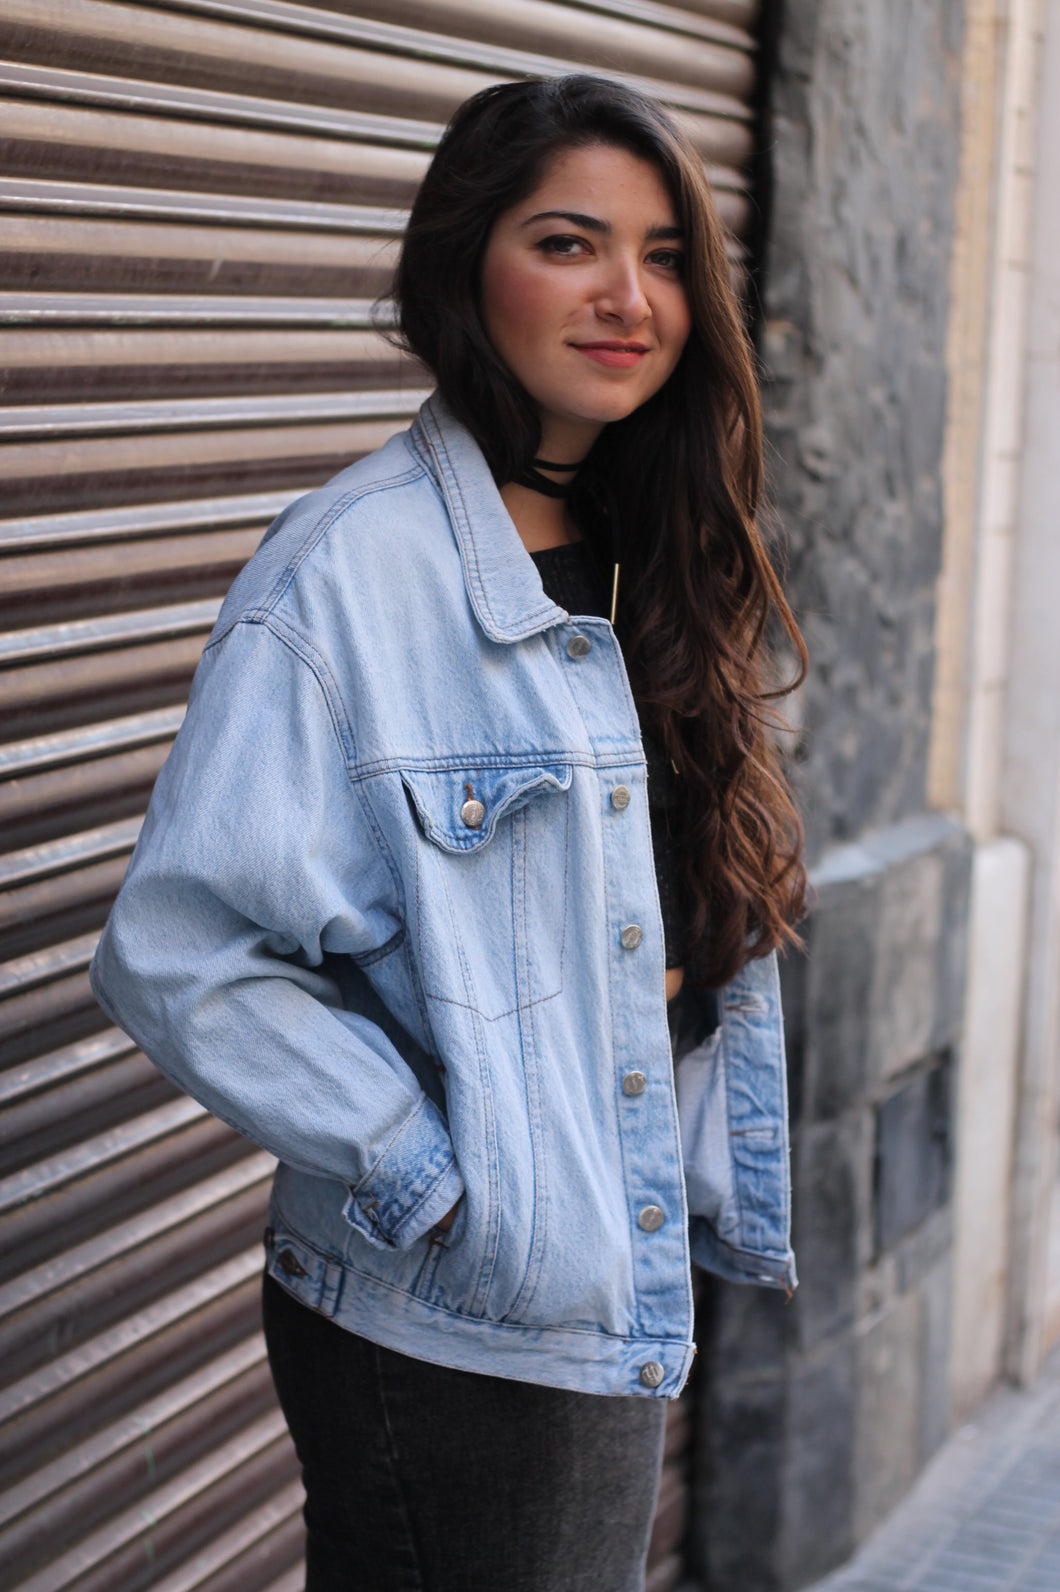 VINTAGE DENIM JACKET TONO MUY MUY CLARO - VARIAS TALLAS DISPONIBLES